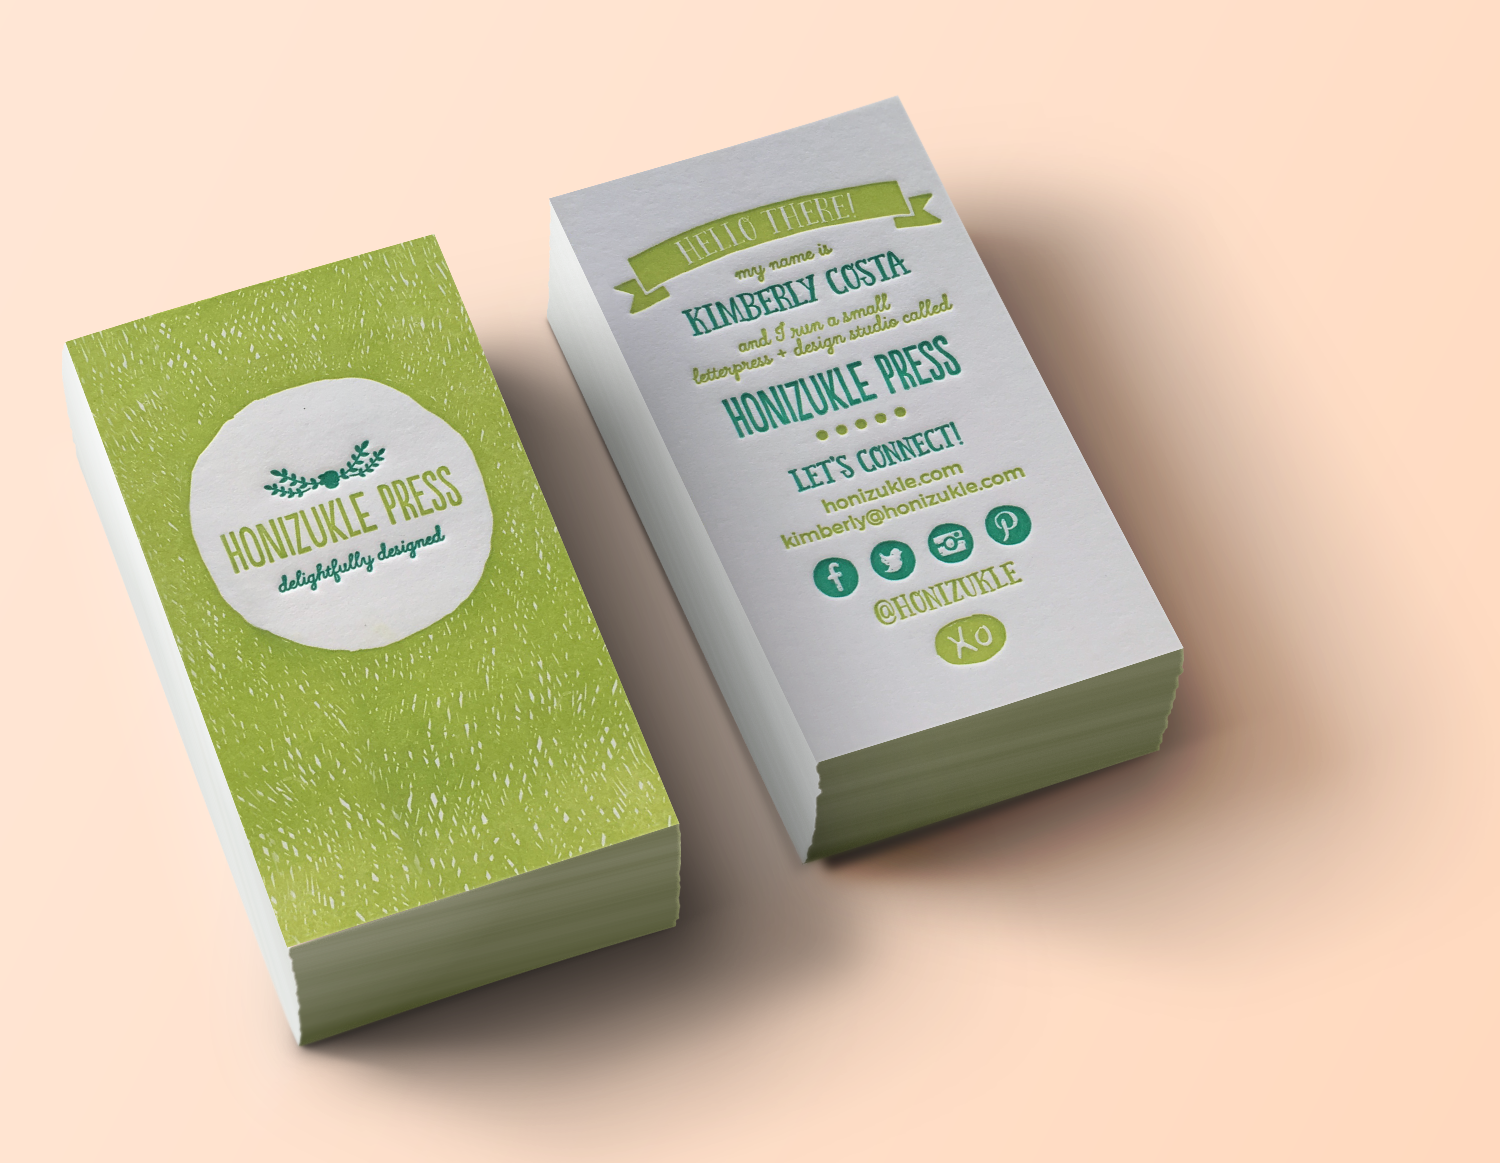 Honizukle Press Business Card | Delightfully Designing